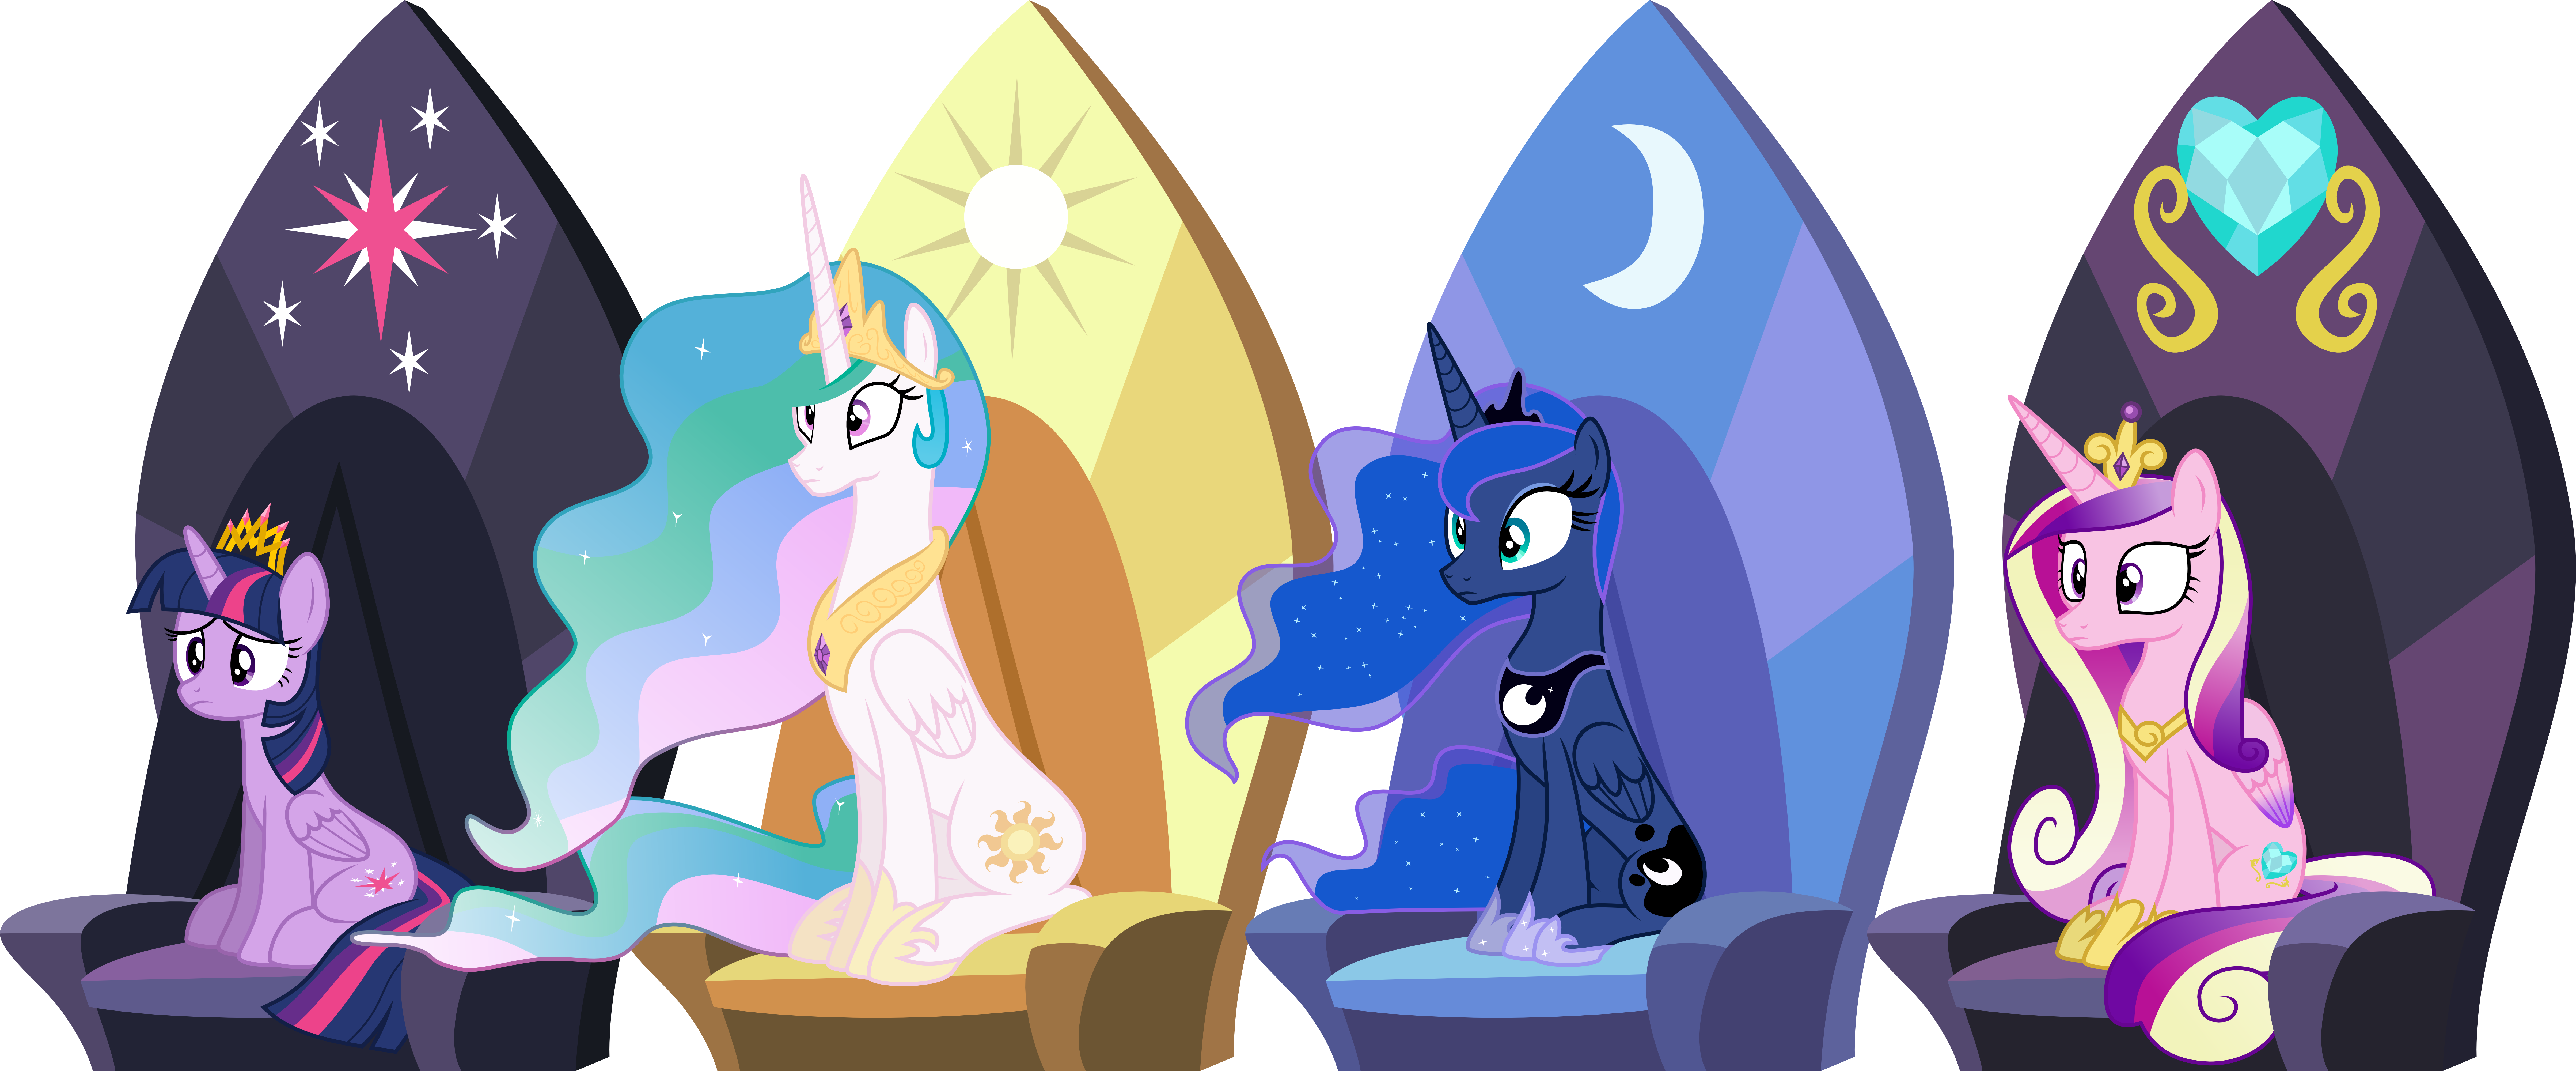 Mlp Sitting In A Chair In A Room